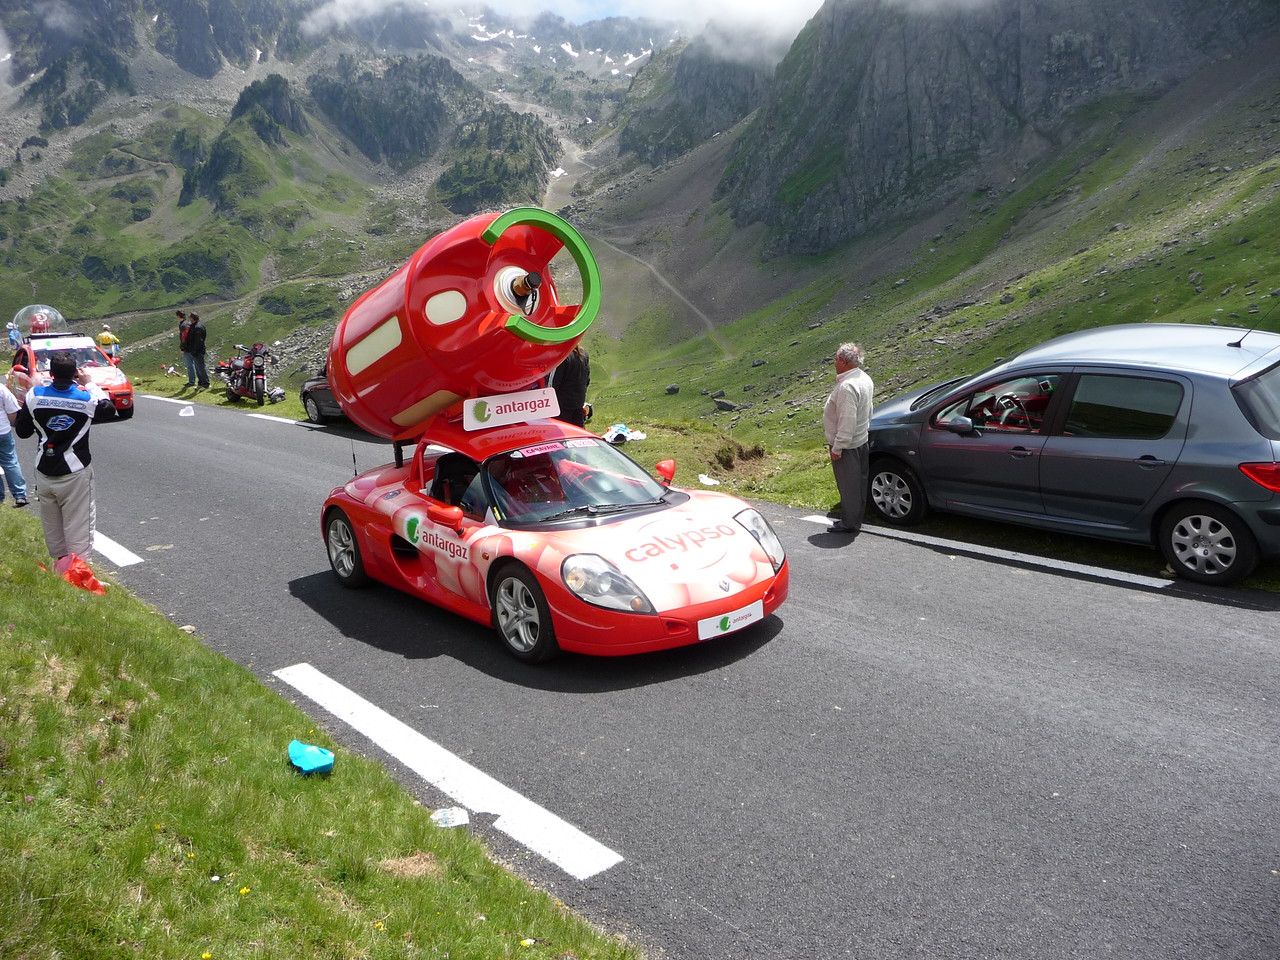 Surely, no explanation is required.